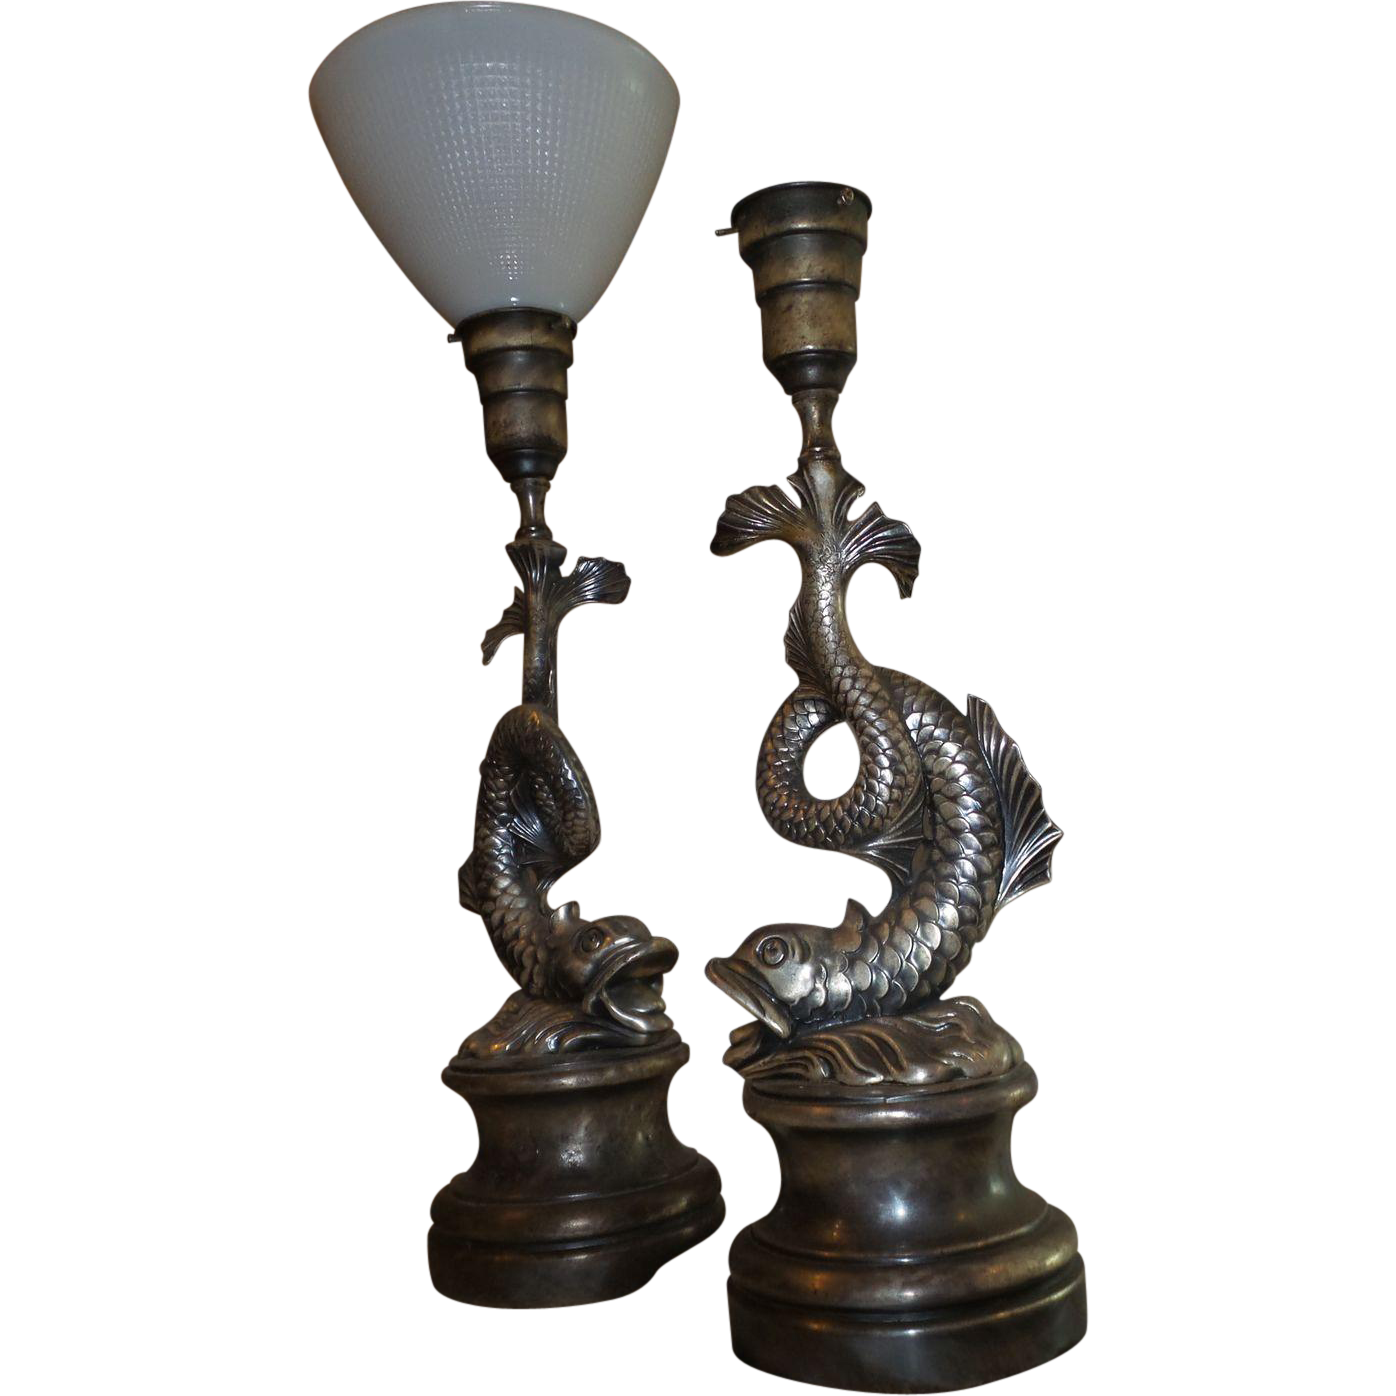 Vintage French Made 1920 S Pair Of Dolphin Shaped Lamps In